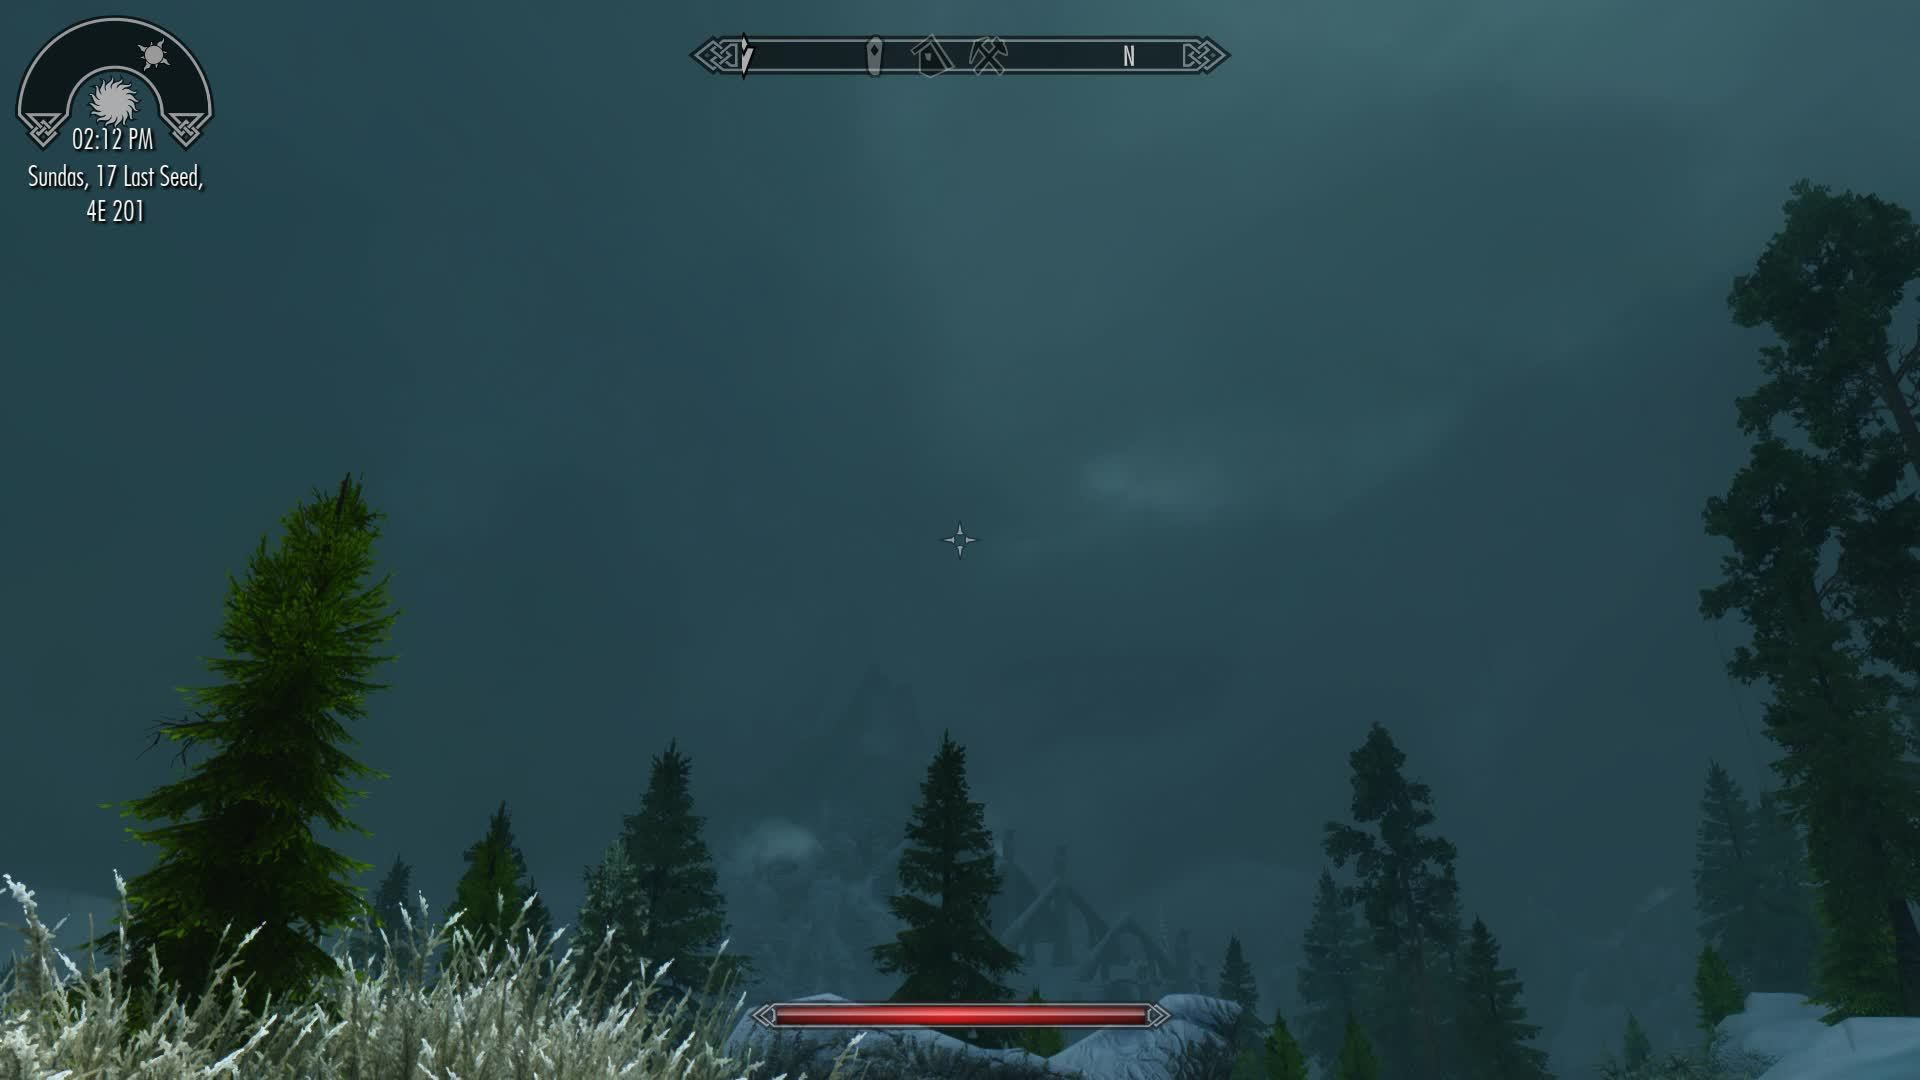 skyrimmods, Today's forecast calls for light showers and thunderstorms GIFs